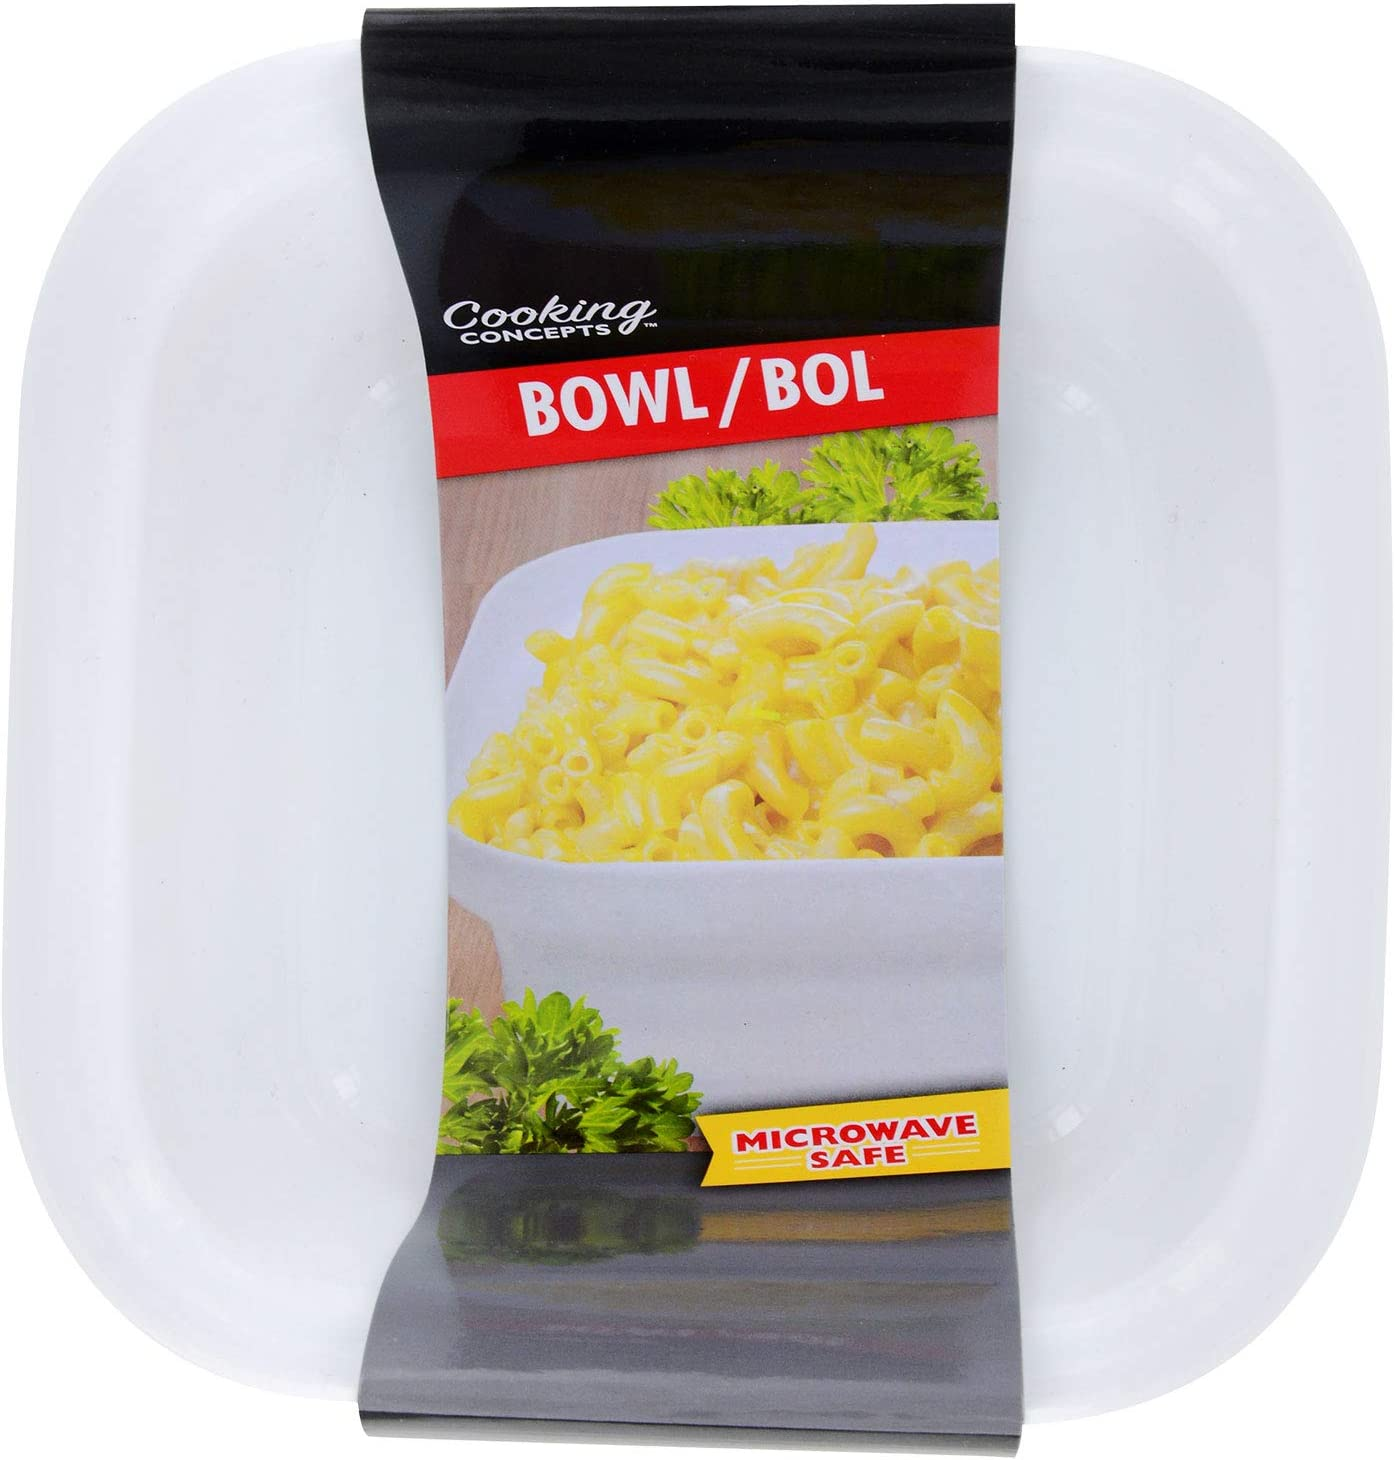 Cooking Concepts Super Sized Square Microwavable Bowl, 6.5 in. Holds Two Batches of Ramen Noodles Plenty Of Room To Heat And Mix With Out A Mess